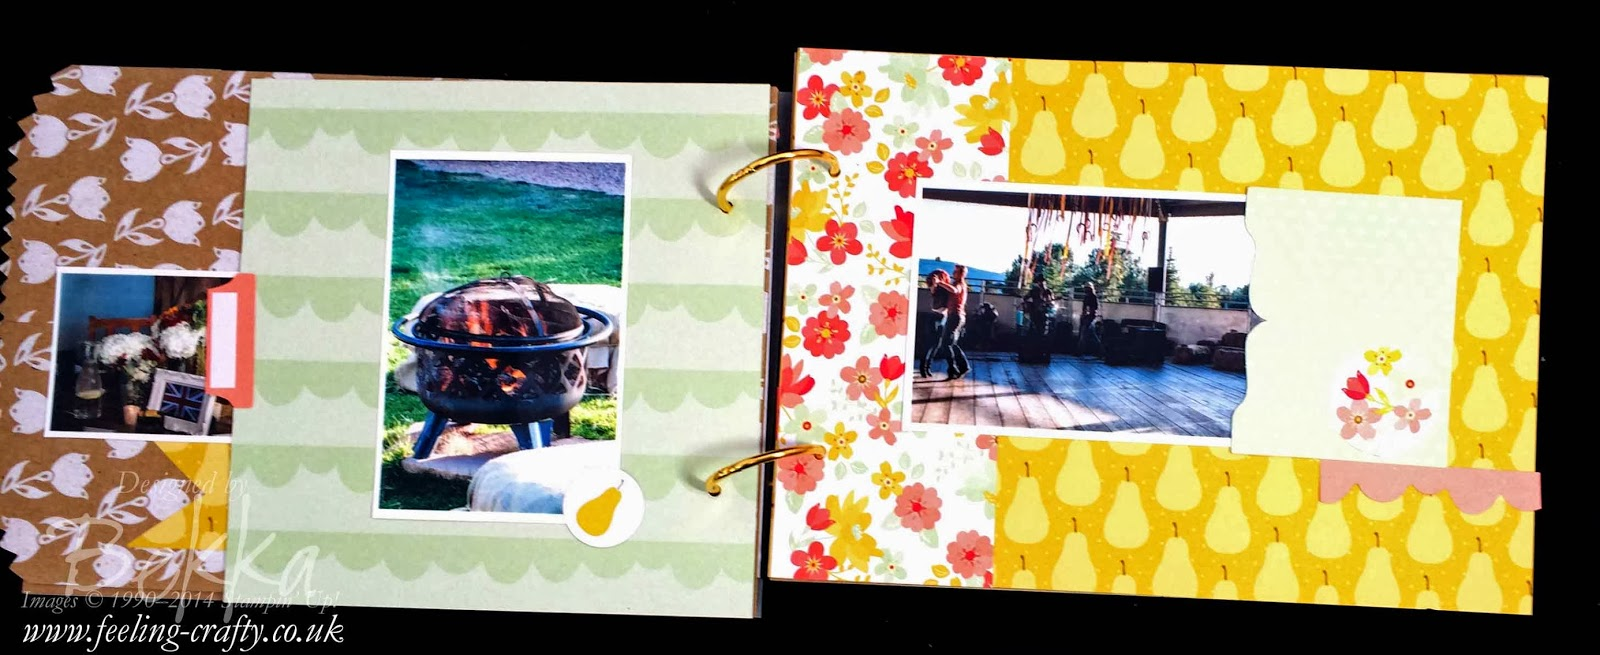 Stampin' Up! Hoe Down Mini Memories Simply Created Album - check this blog for a new Scrapbook Idea every Saturday